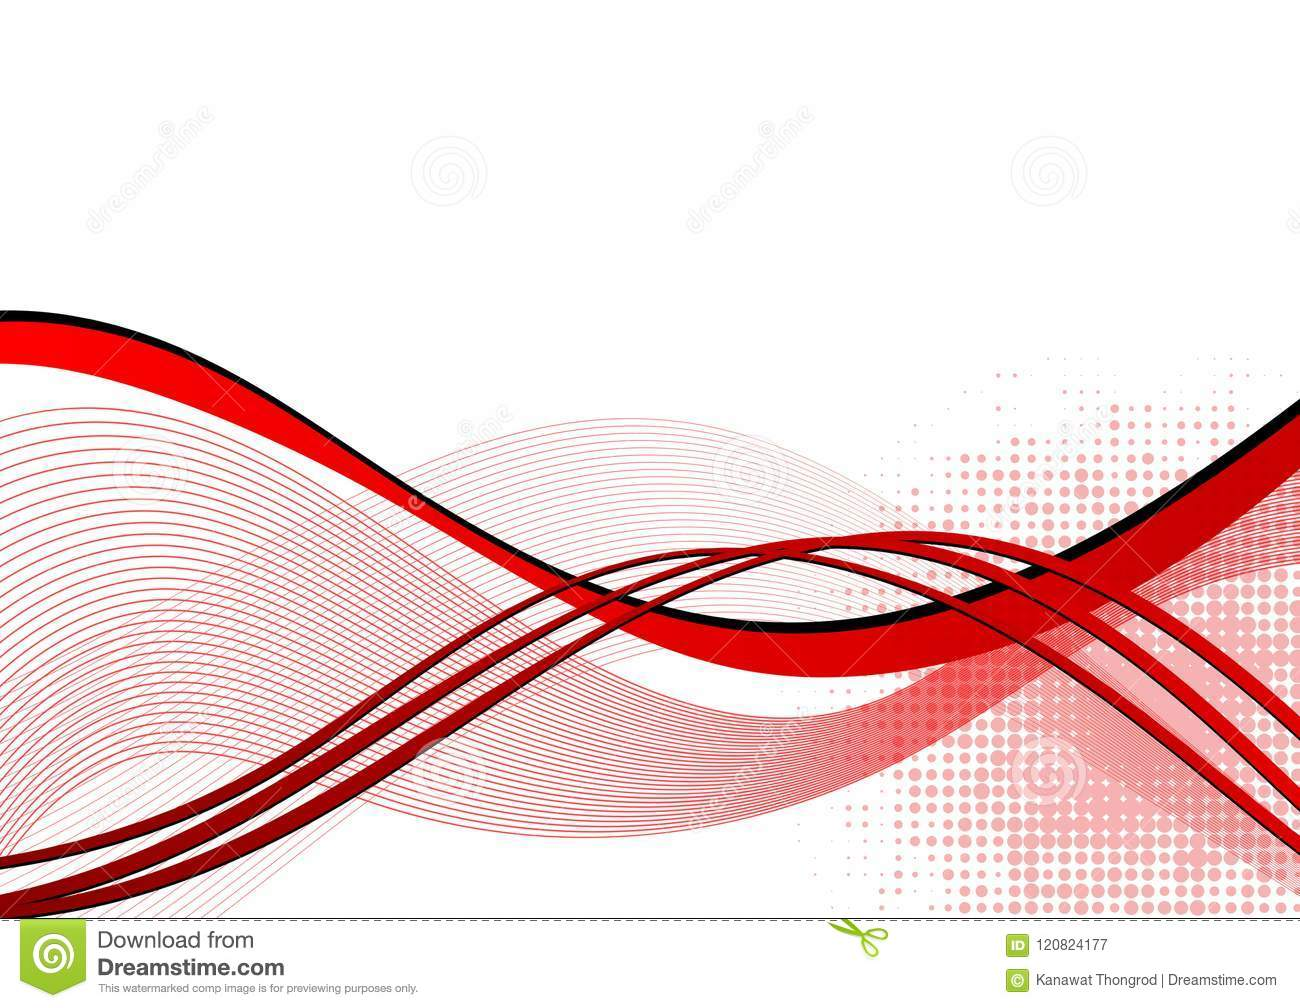 Red wave abstract background with copy space. Vector illustration